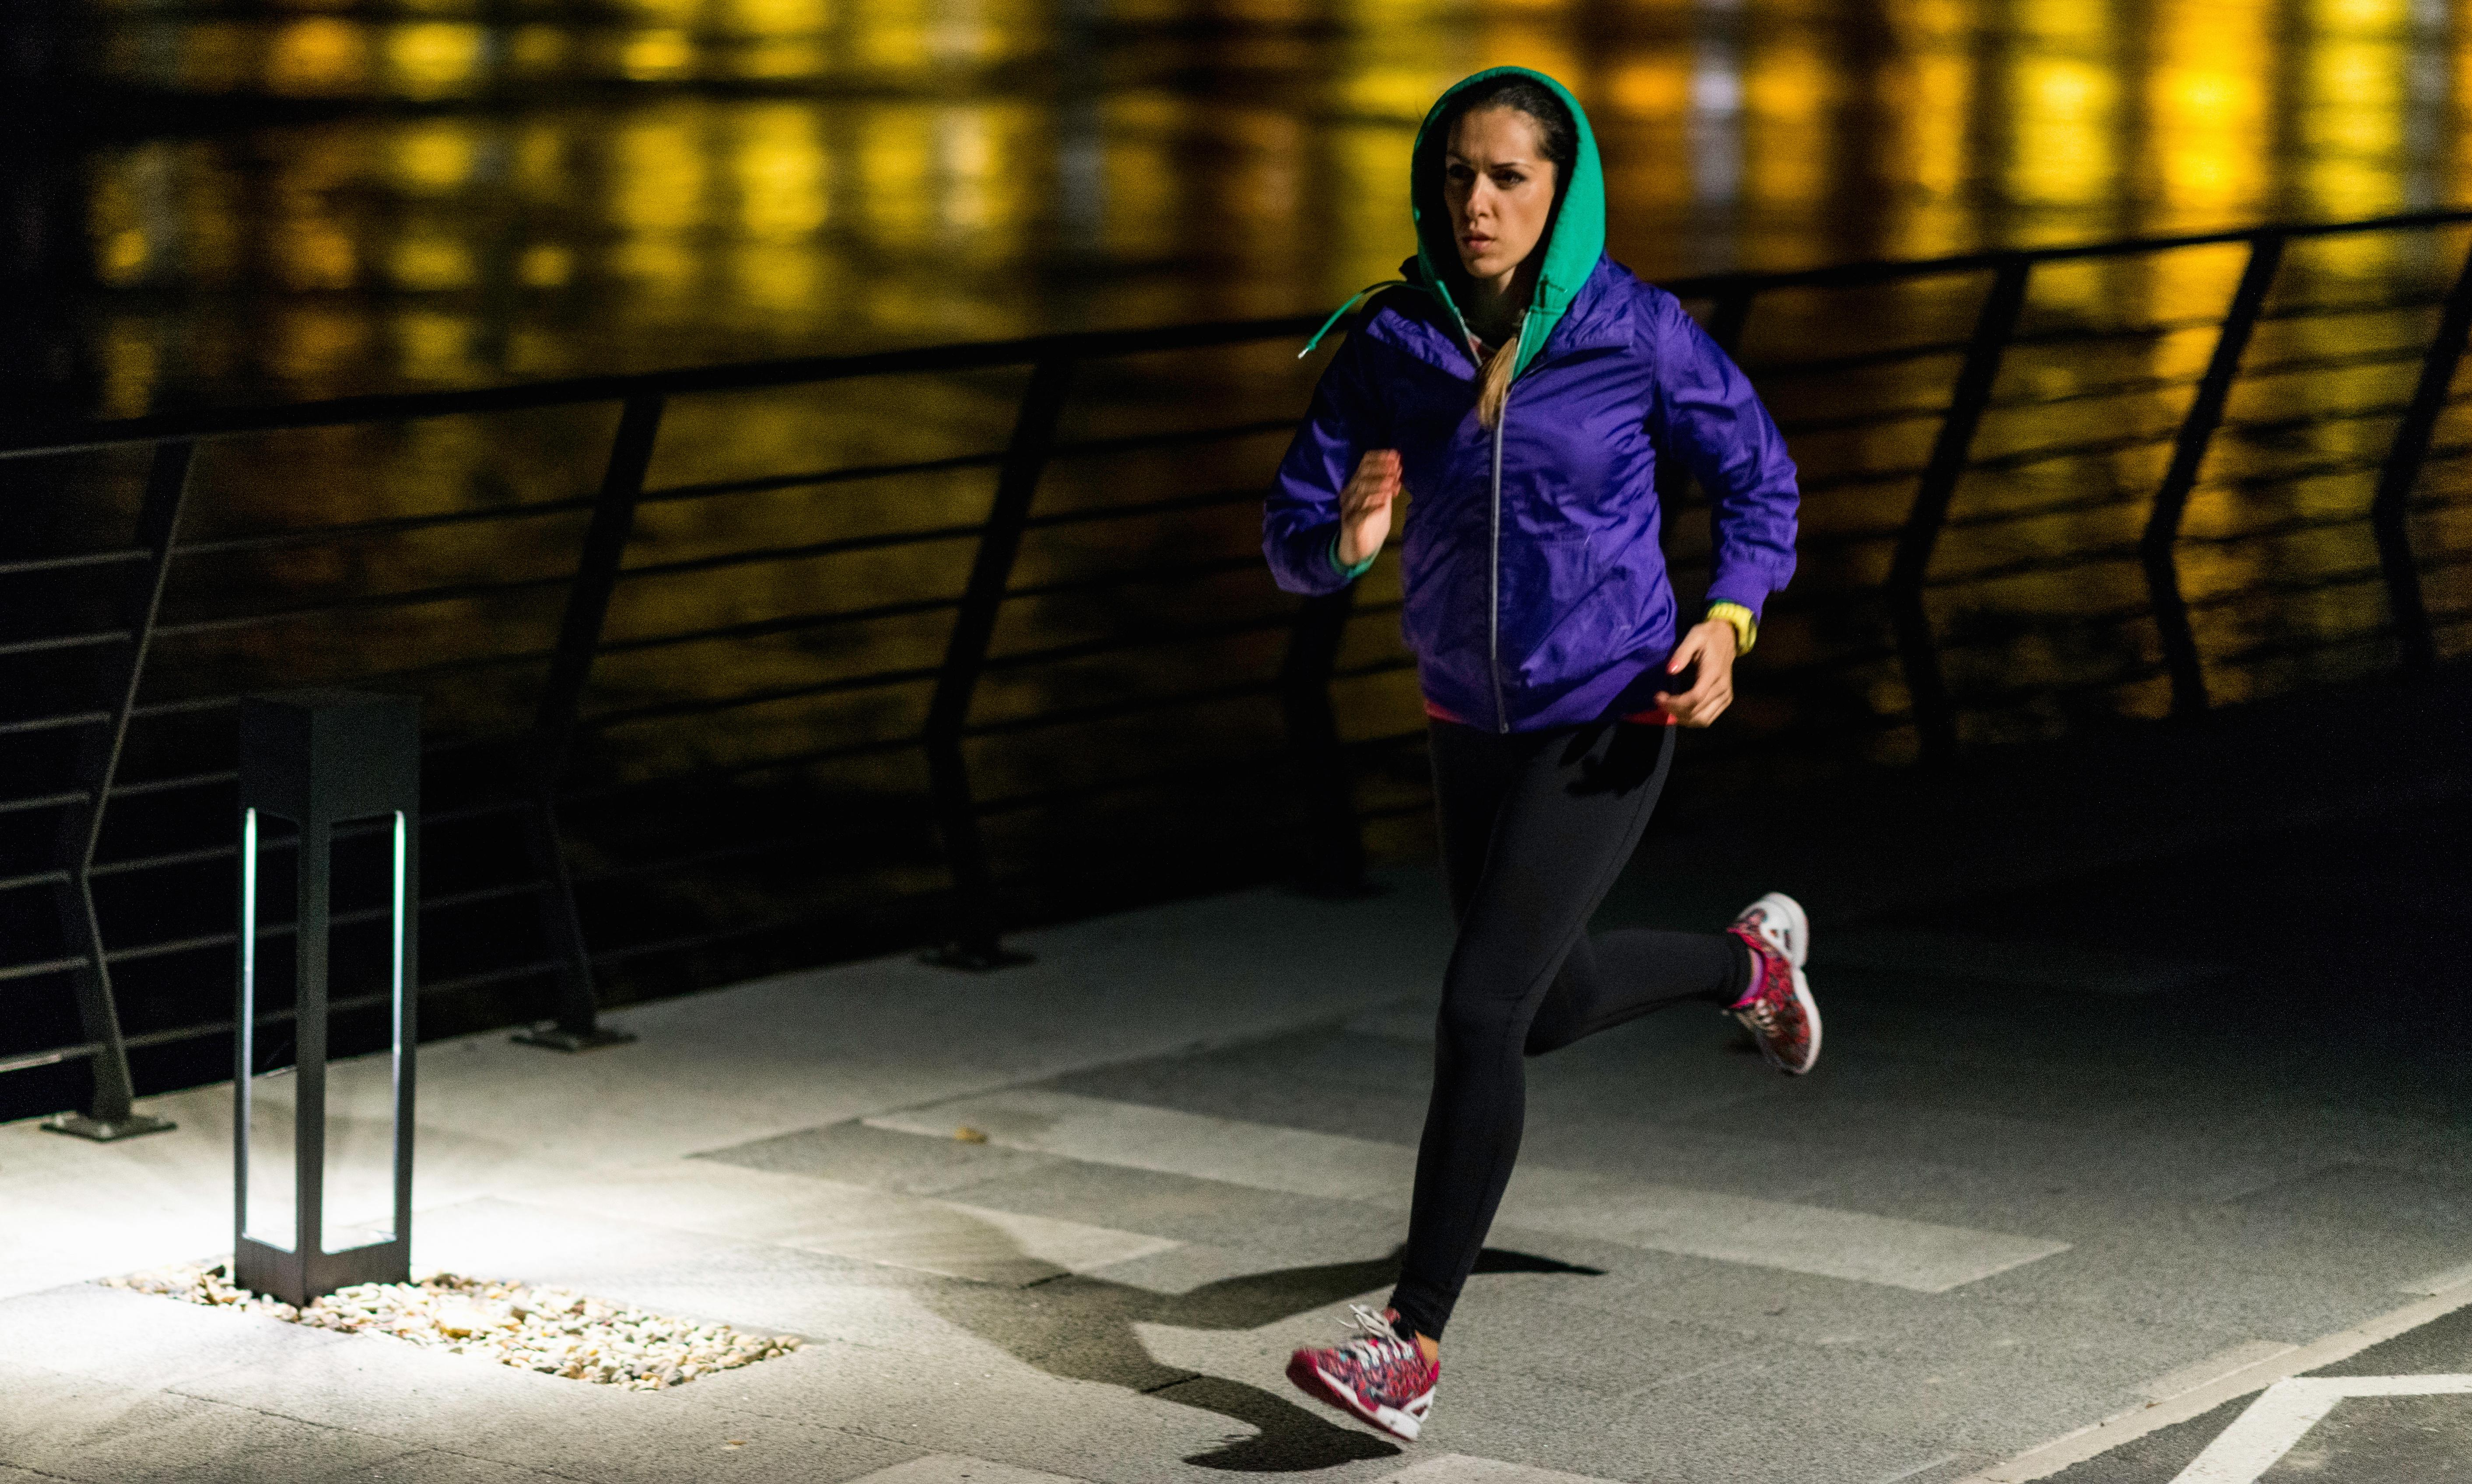 Ego trip: why are some male runners so threatened by a speedy woman?